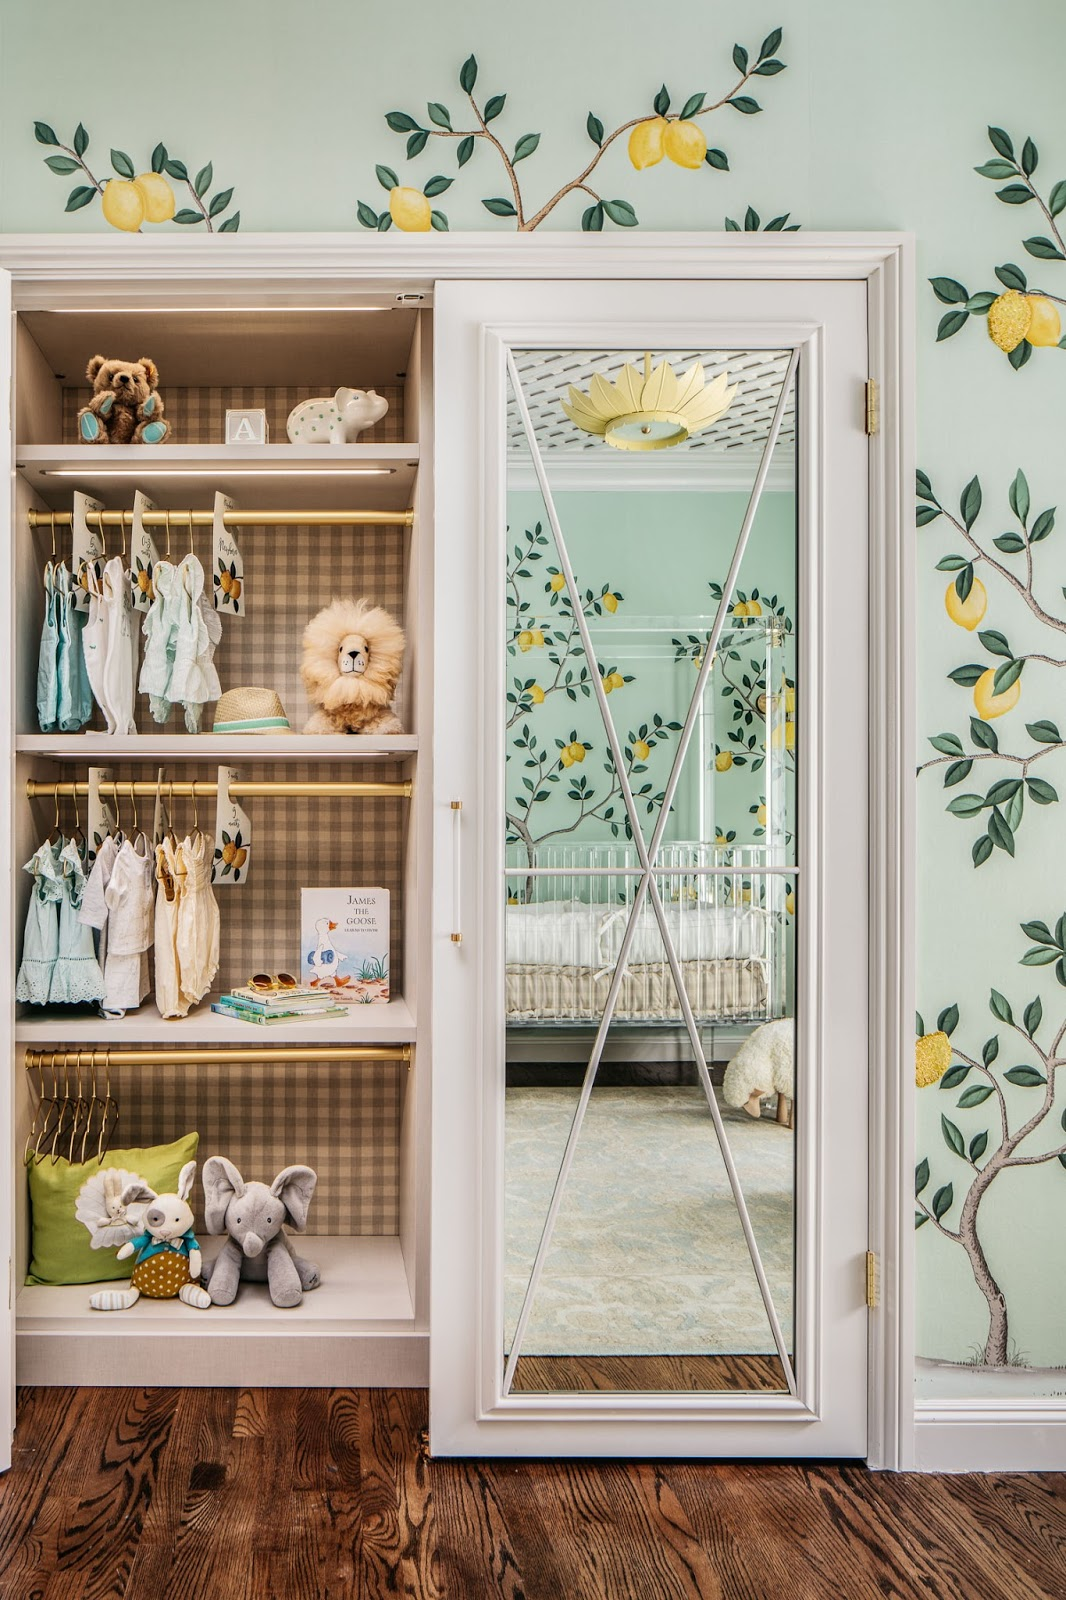 De Gournay Lemon Wallpaper And Gingham Closet In A Nursery By Dina Bandman For The 2018